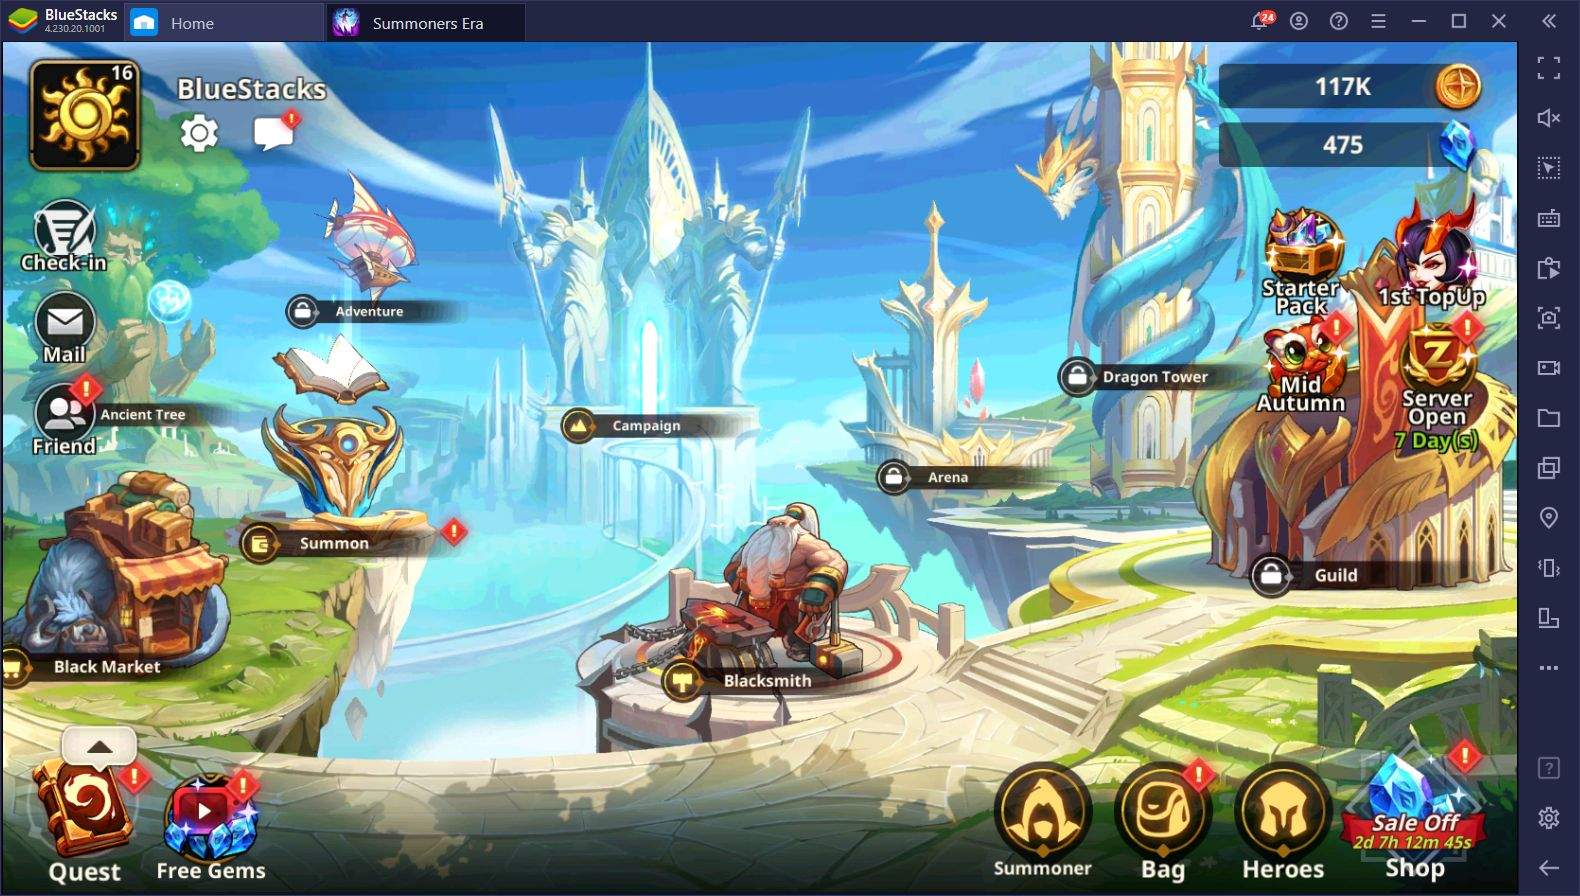 Summoners Era Beginner's Guide – All You Need to Know to Get Started